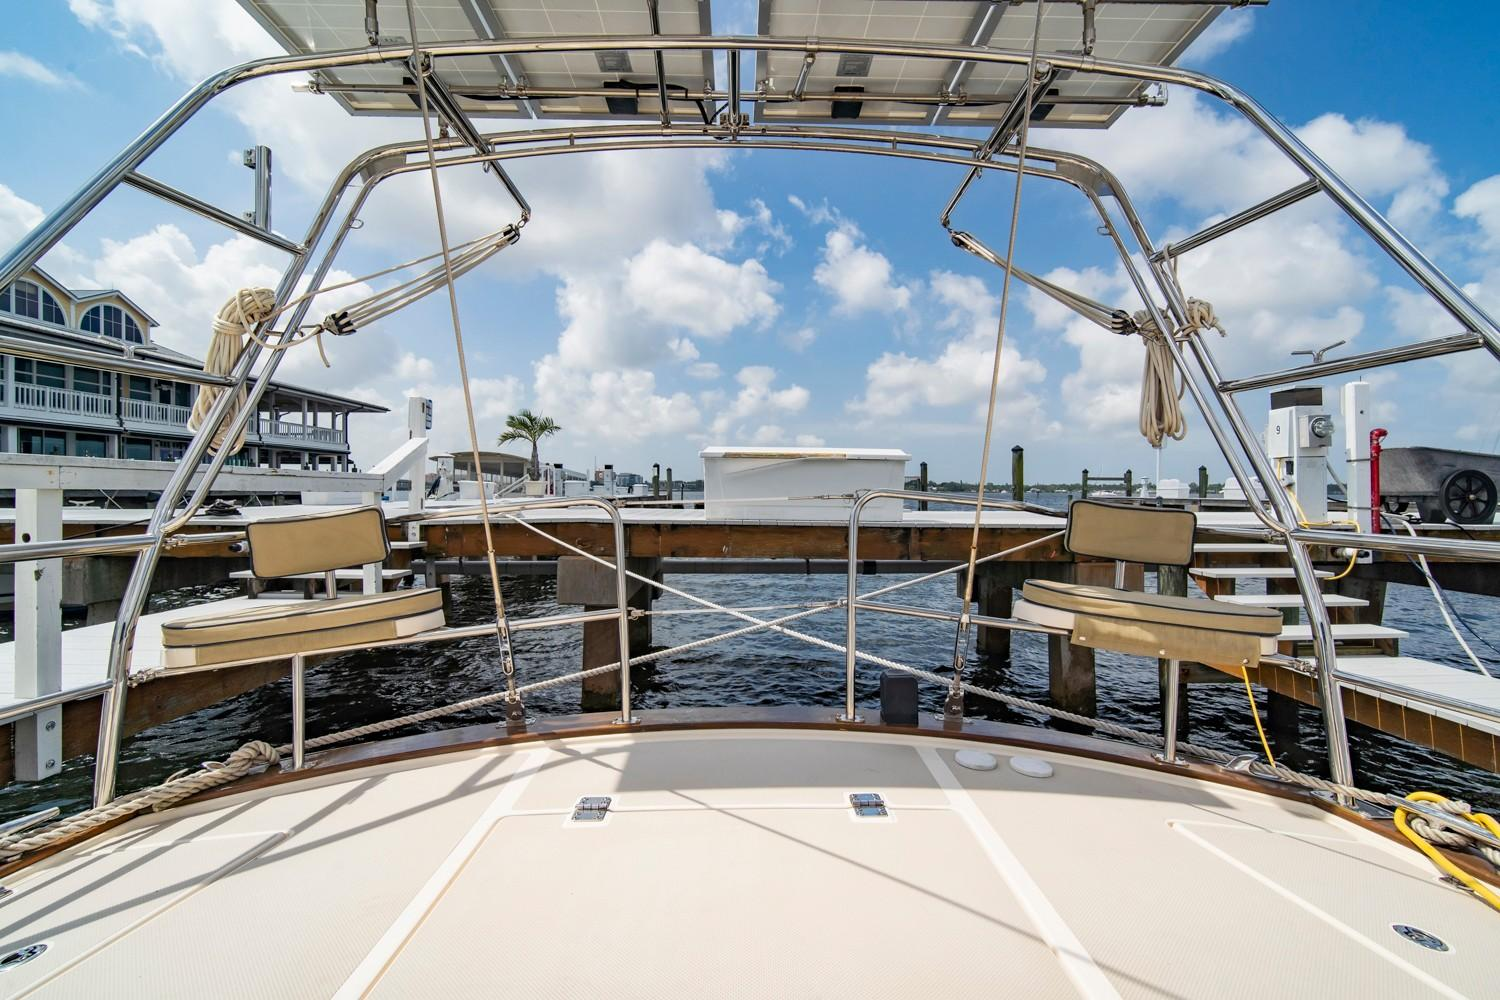 Kato stainless steel arch with davits and outboard lift (2019)